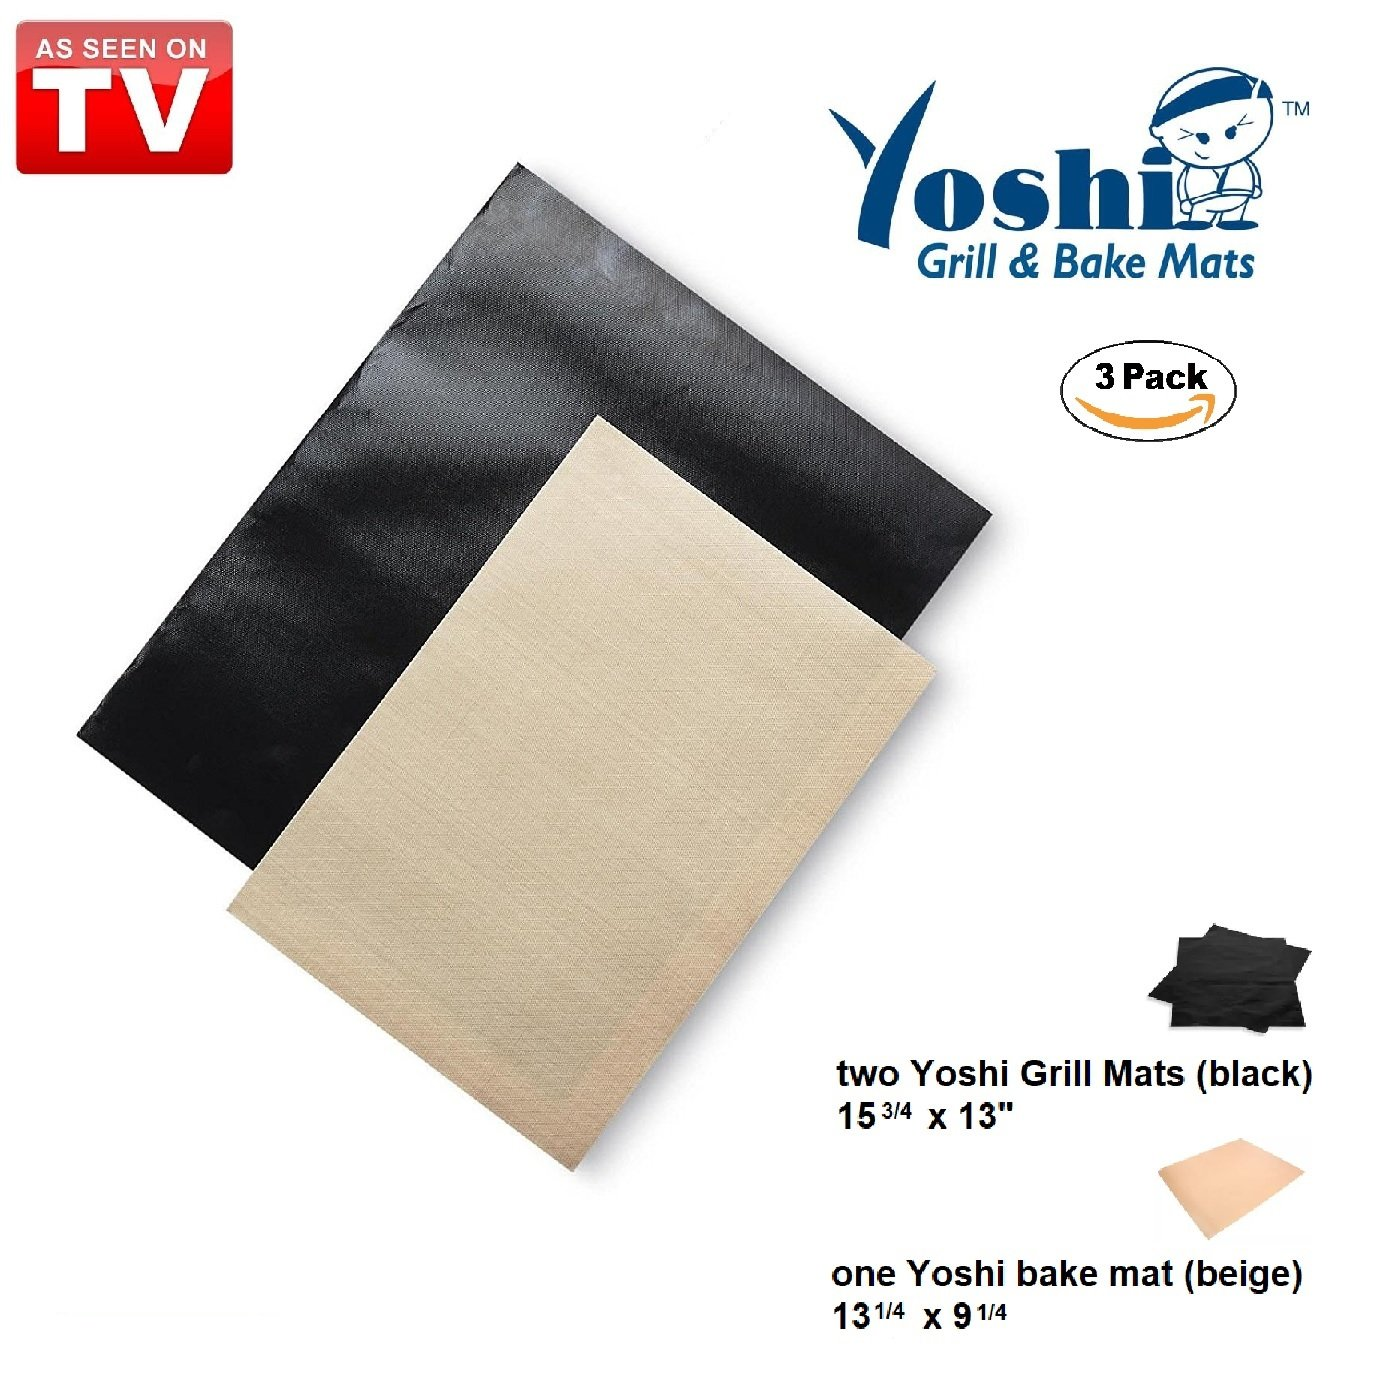 As Seen on TV Yoshi Grill & Bake Mat, 3 Pack | Two (2) Black Grill Mats 15.75